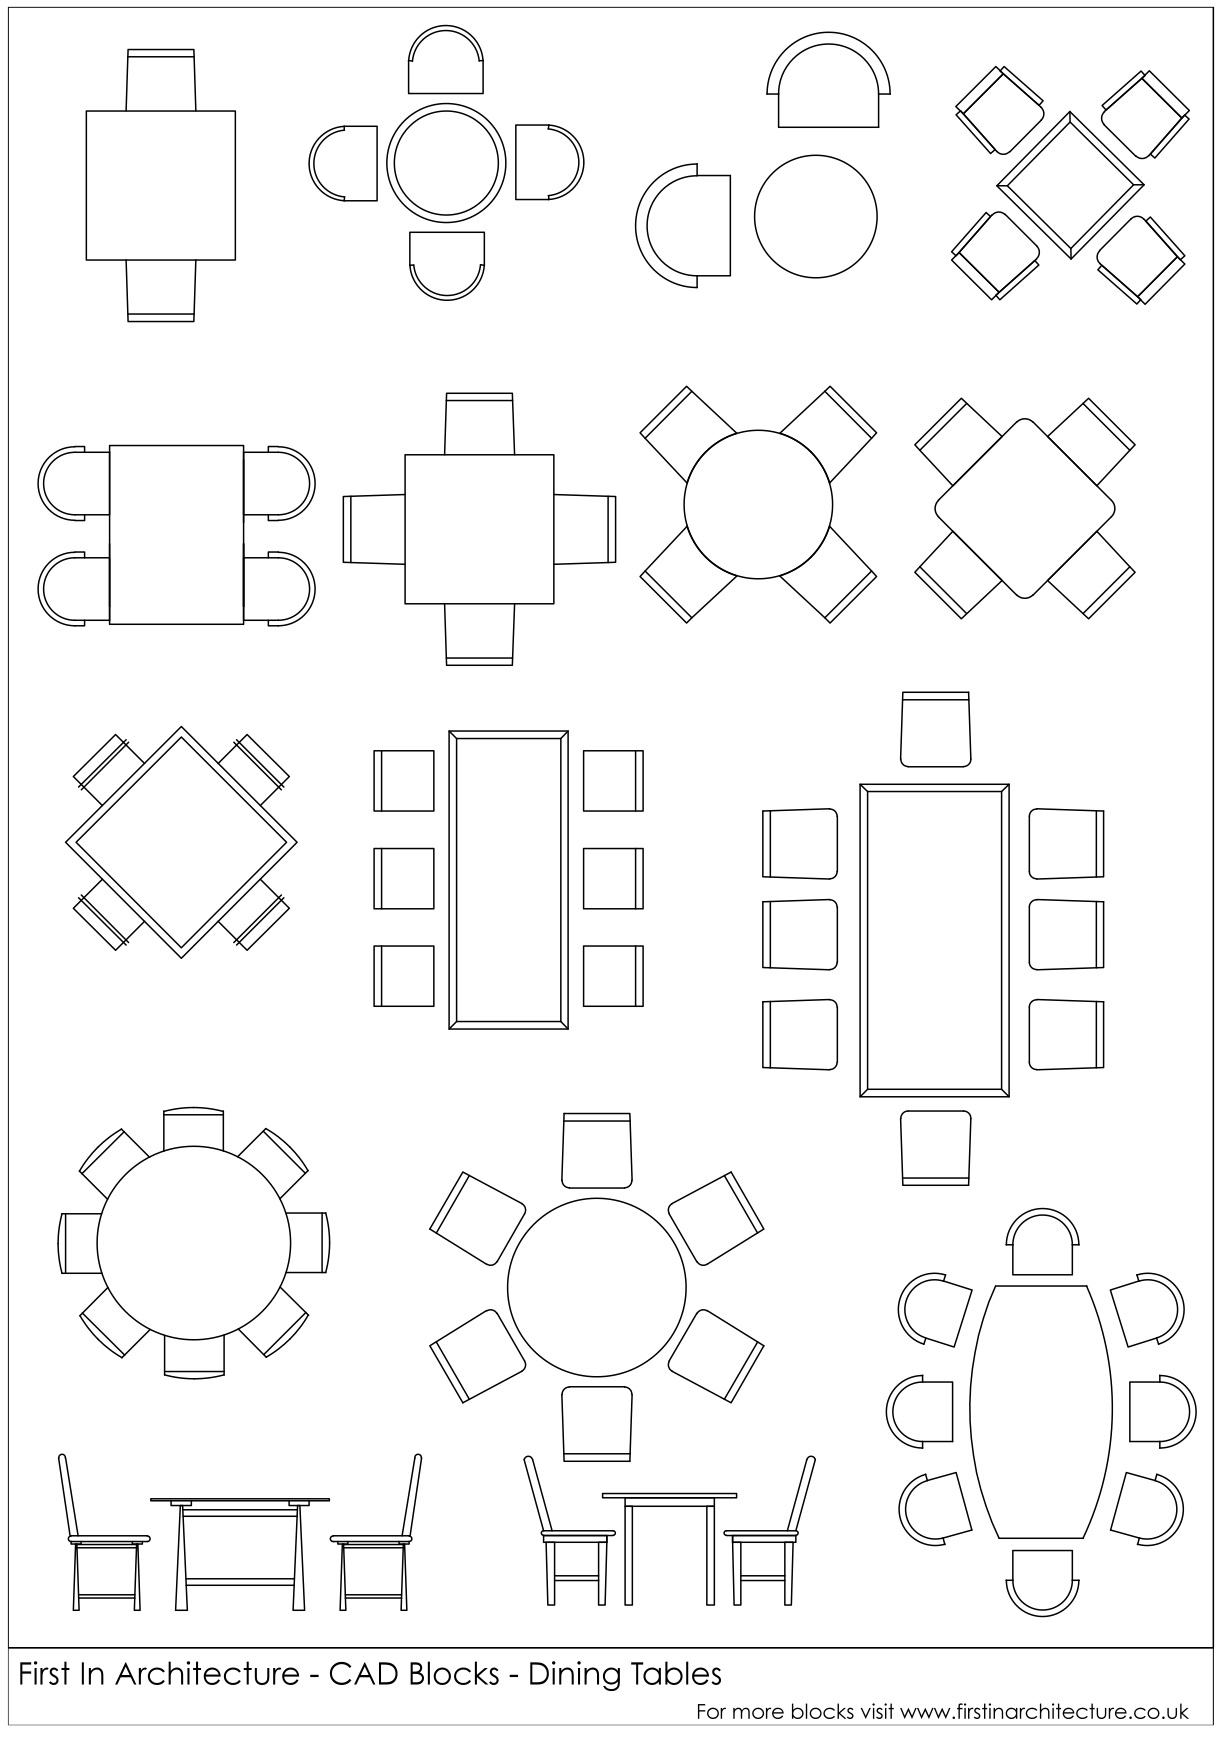 Free CAD Blocks Dining Tables - Conference table dwg